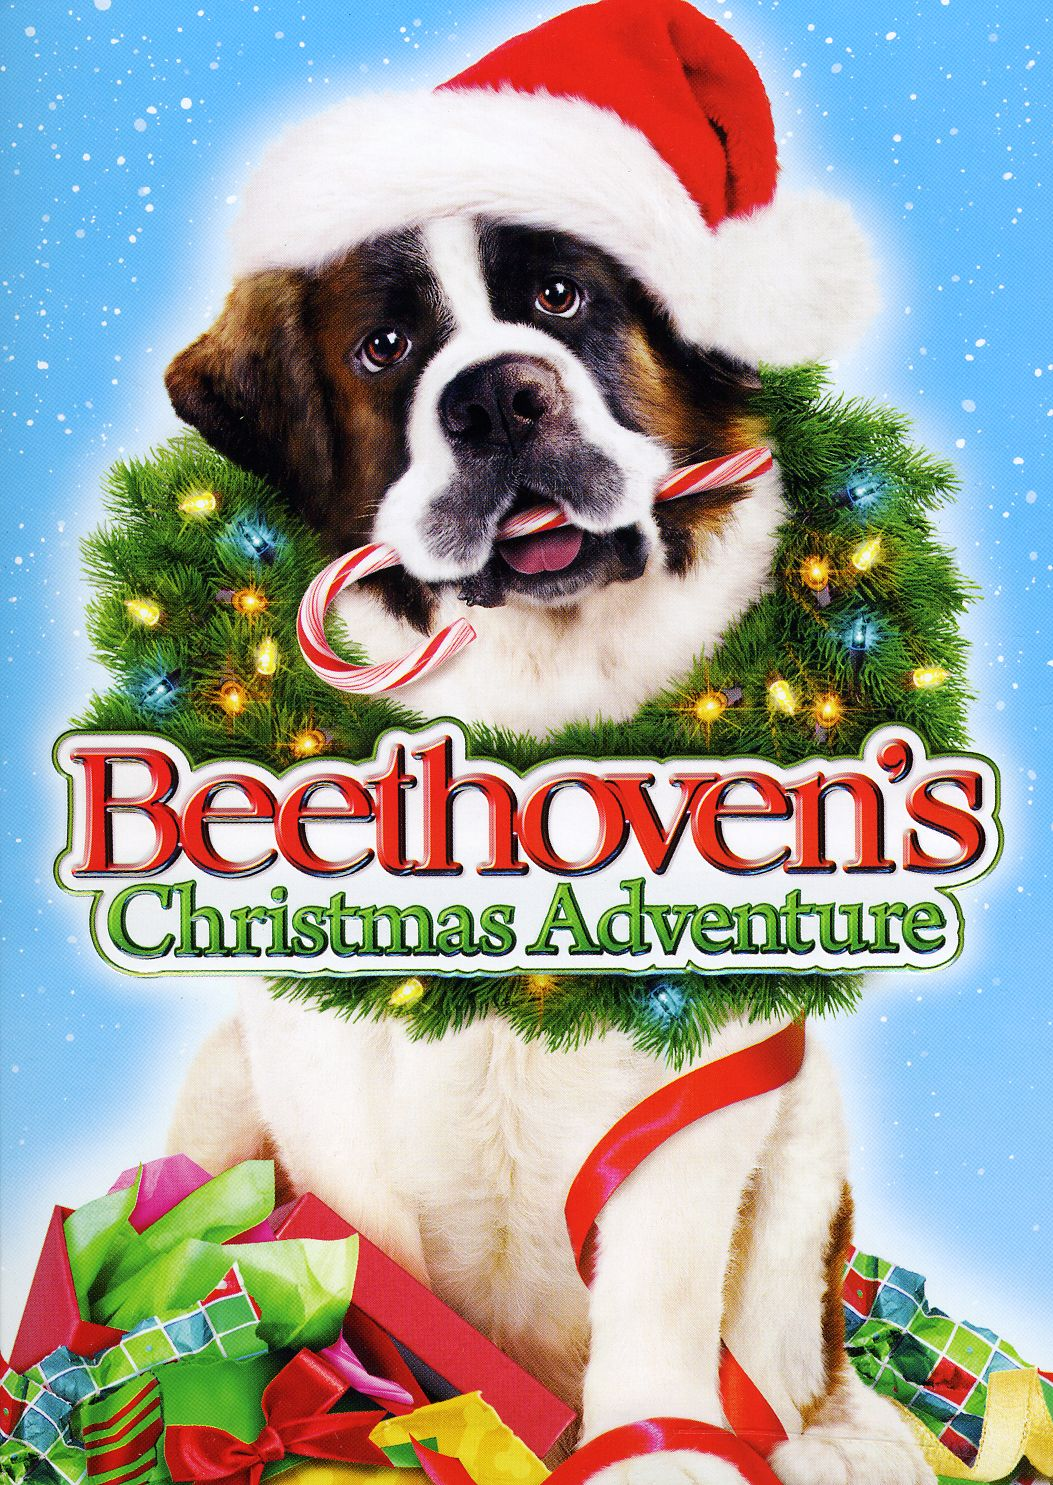 Beethoven's Christmas Adventure (DVD)